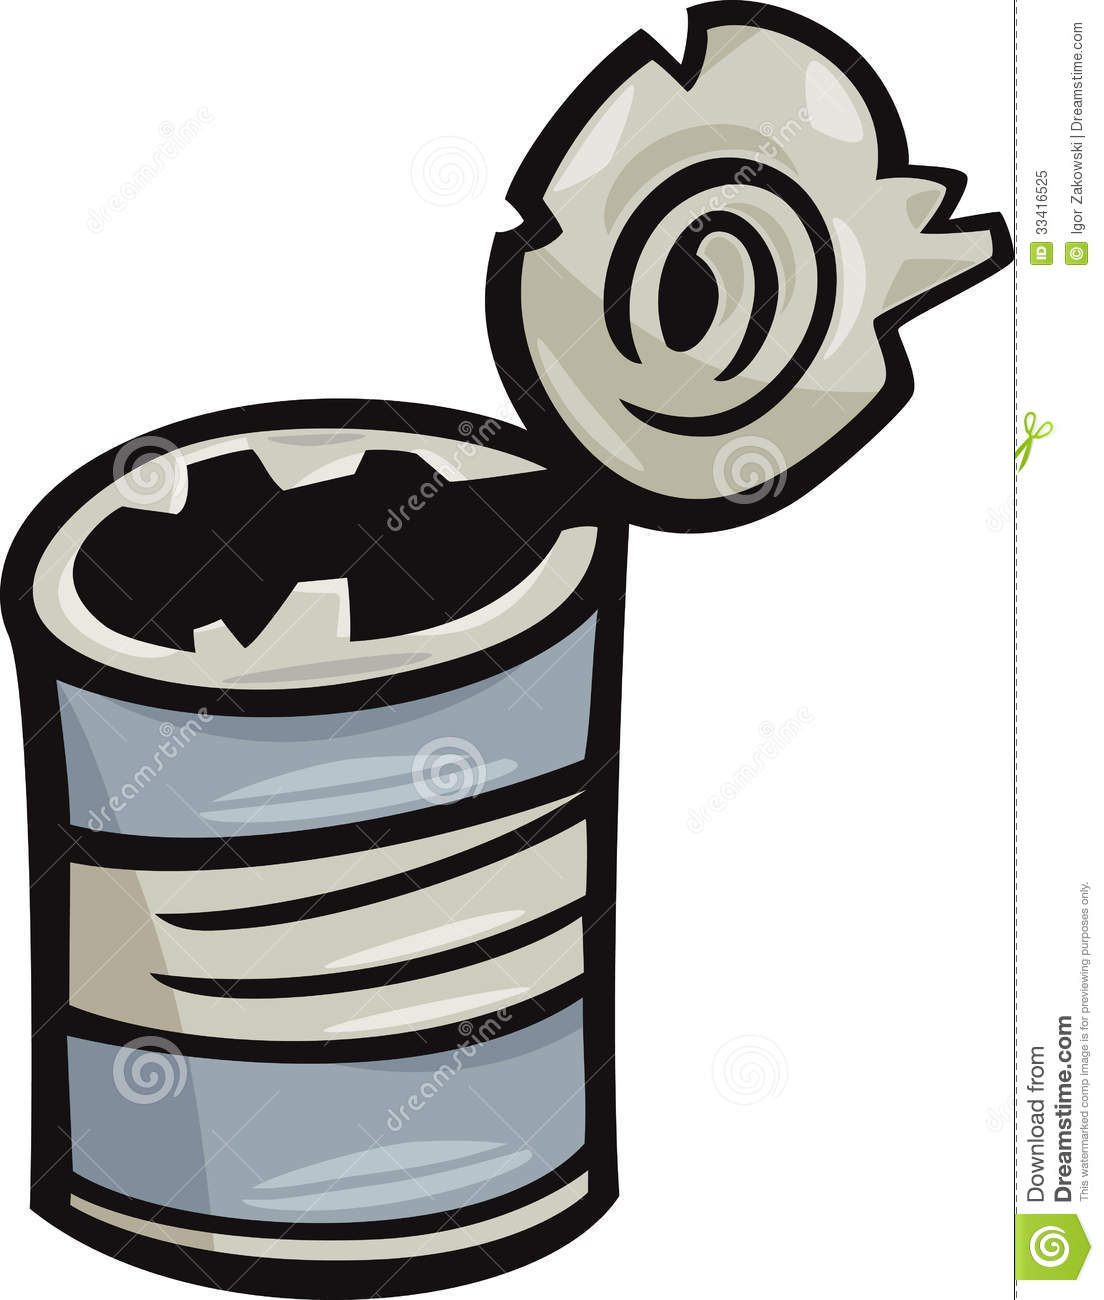 Old Can Junk Cartoon Illustration Royalty Free Stock Photo - Image ...